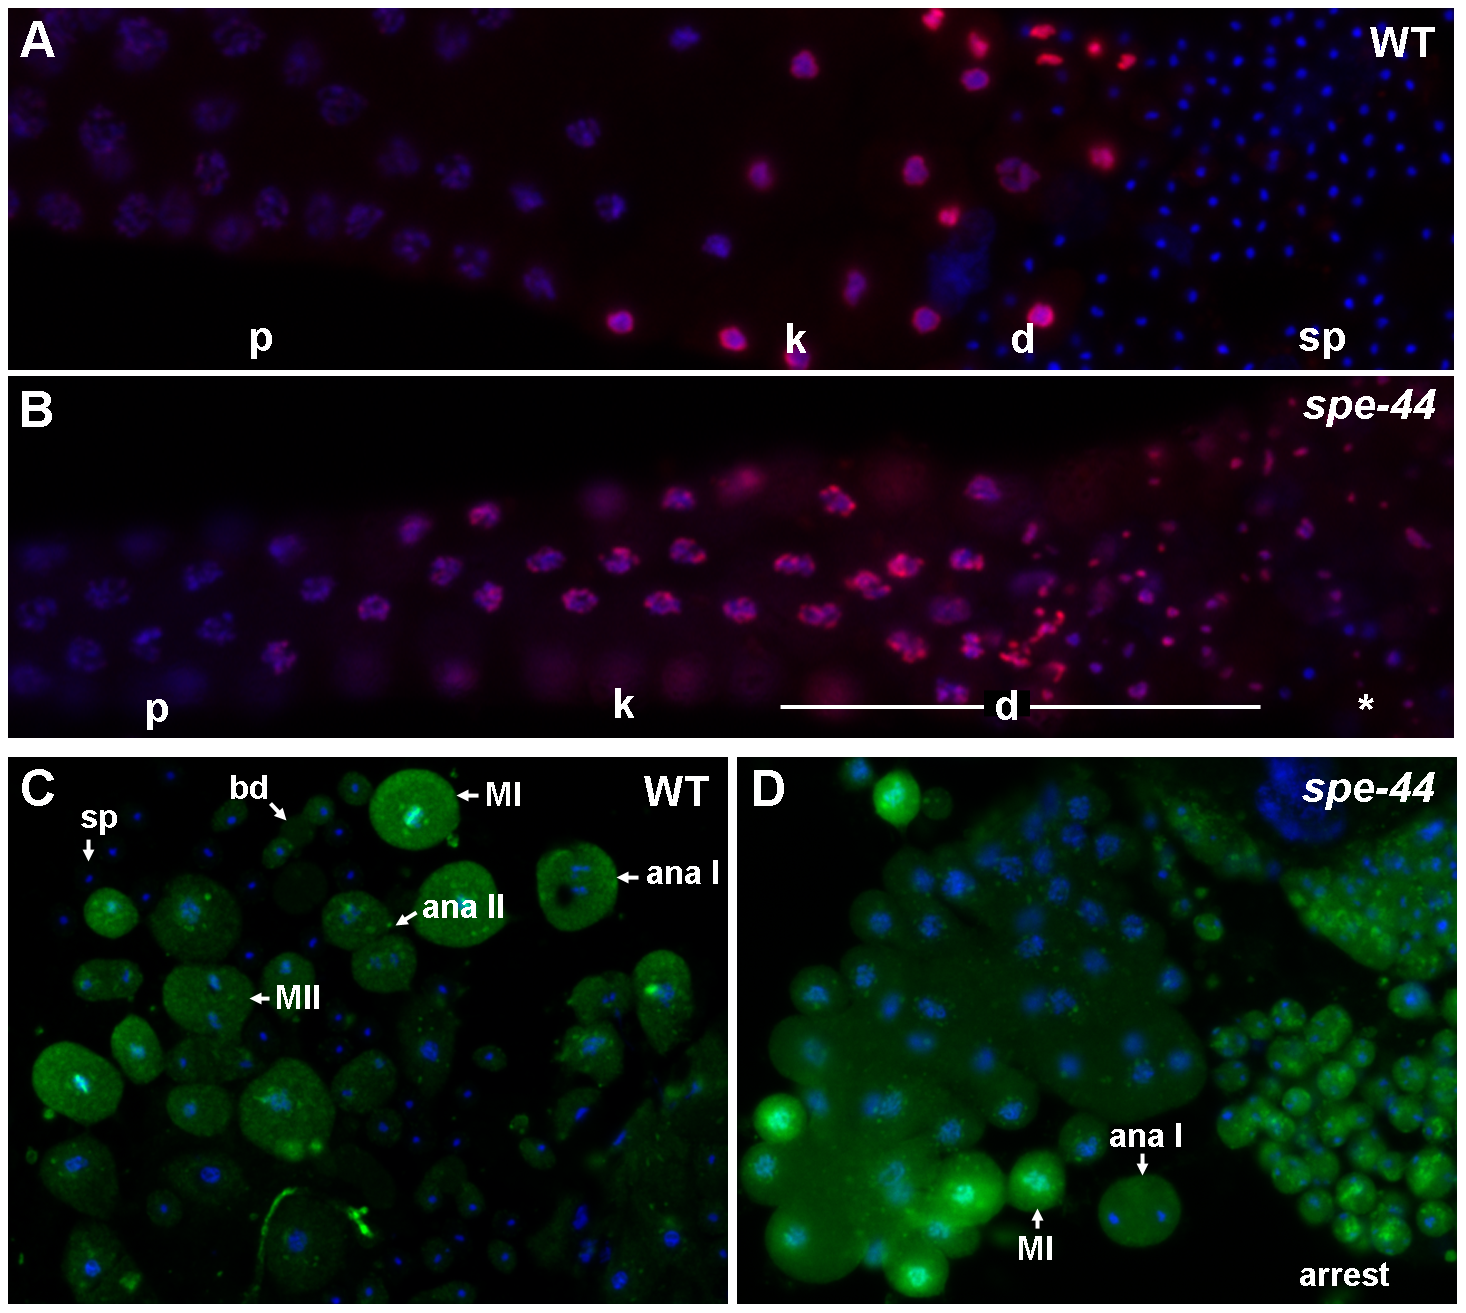 Cell cycle defects in <i>spe-44</i> sperm.